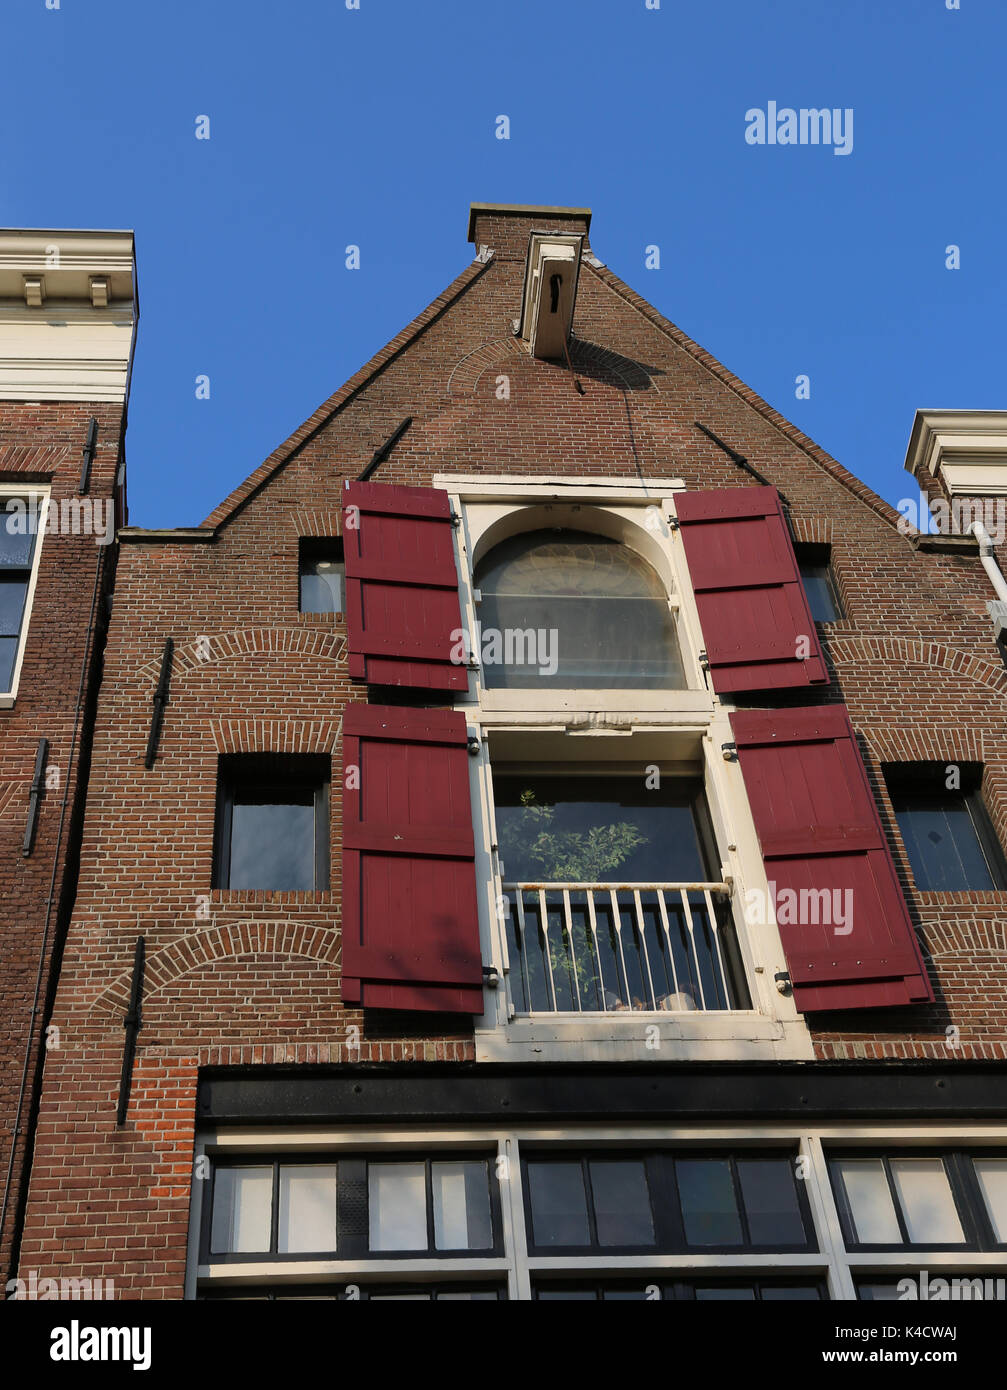 typical amsterdam house with hook near the roof to carry the furniture while moving - Stock Image